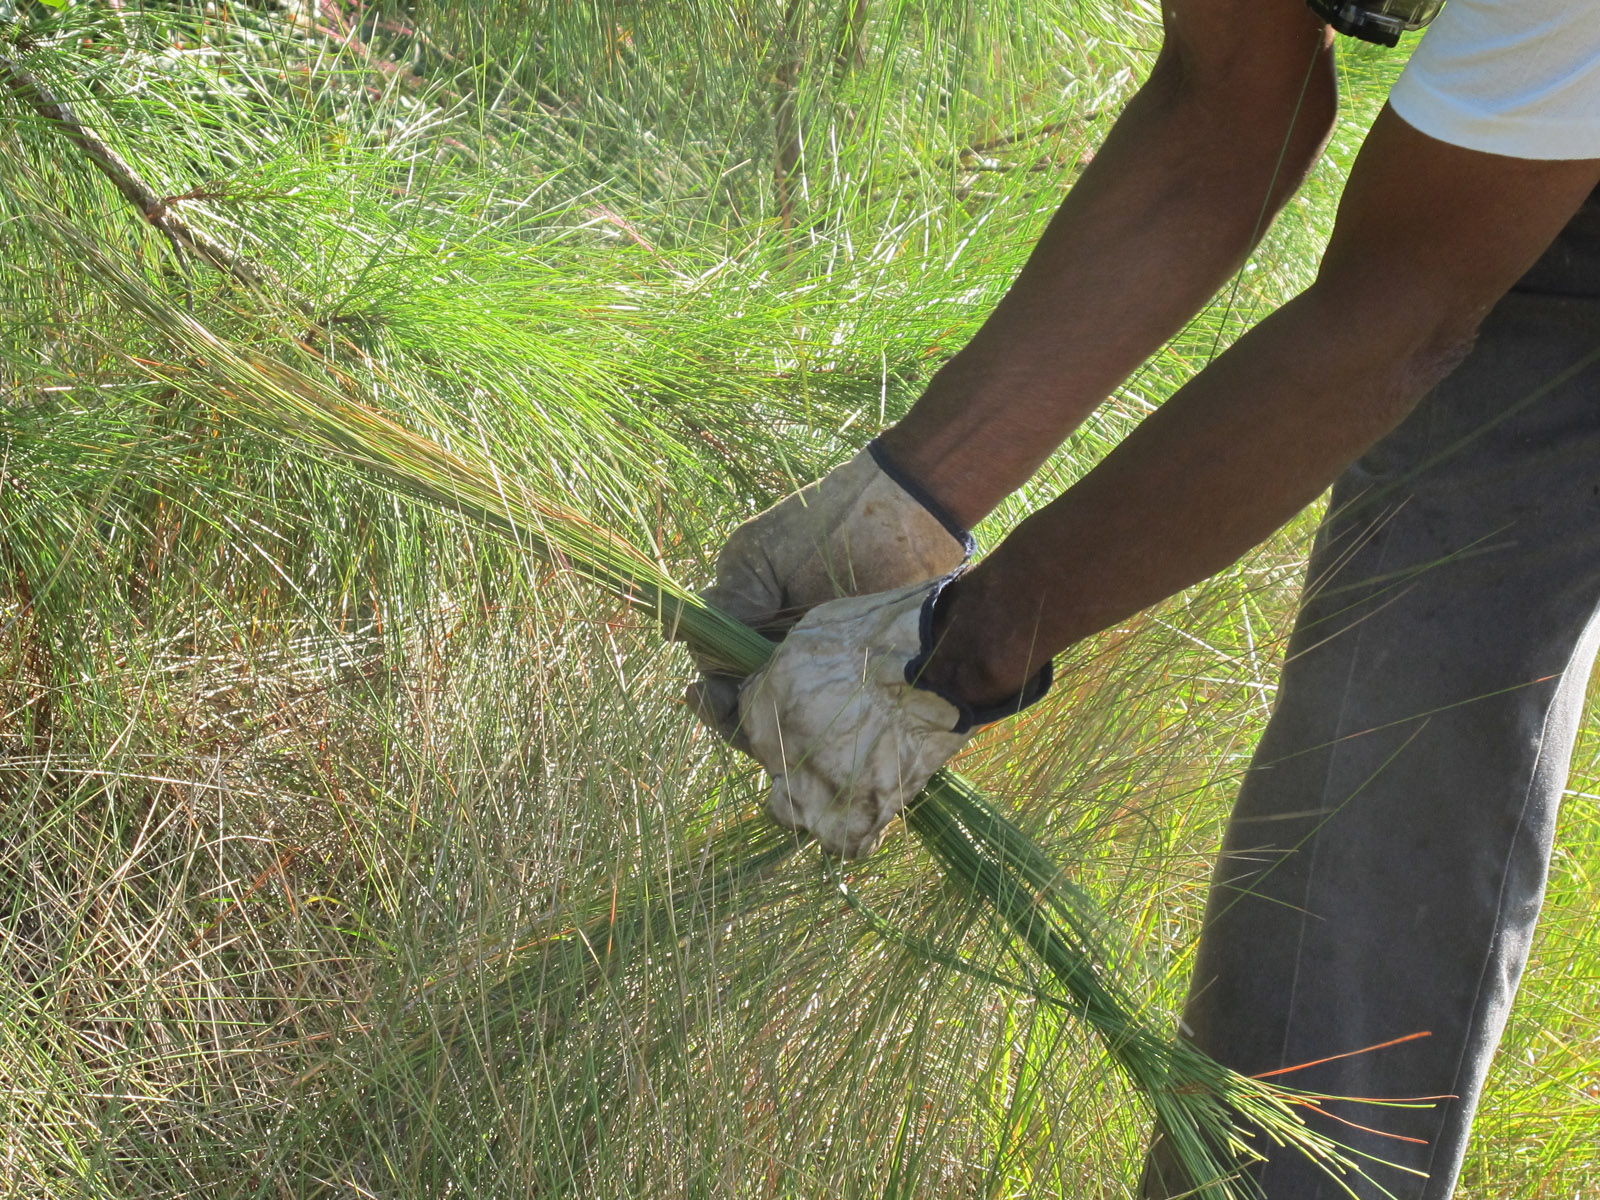 Study: Ornamental grass could offer protection from mosquito bites